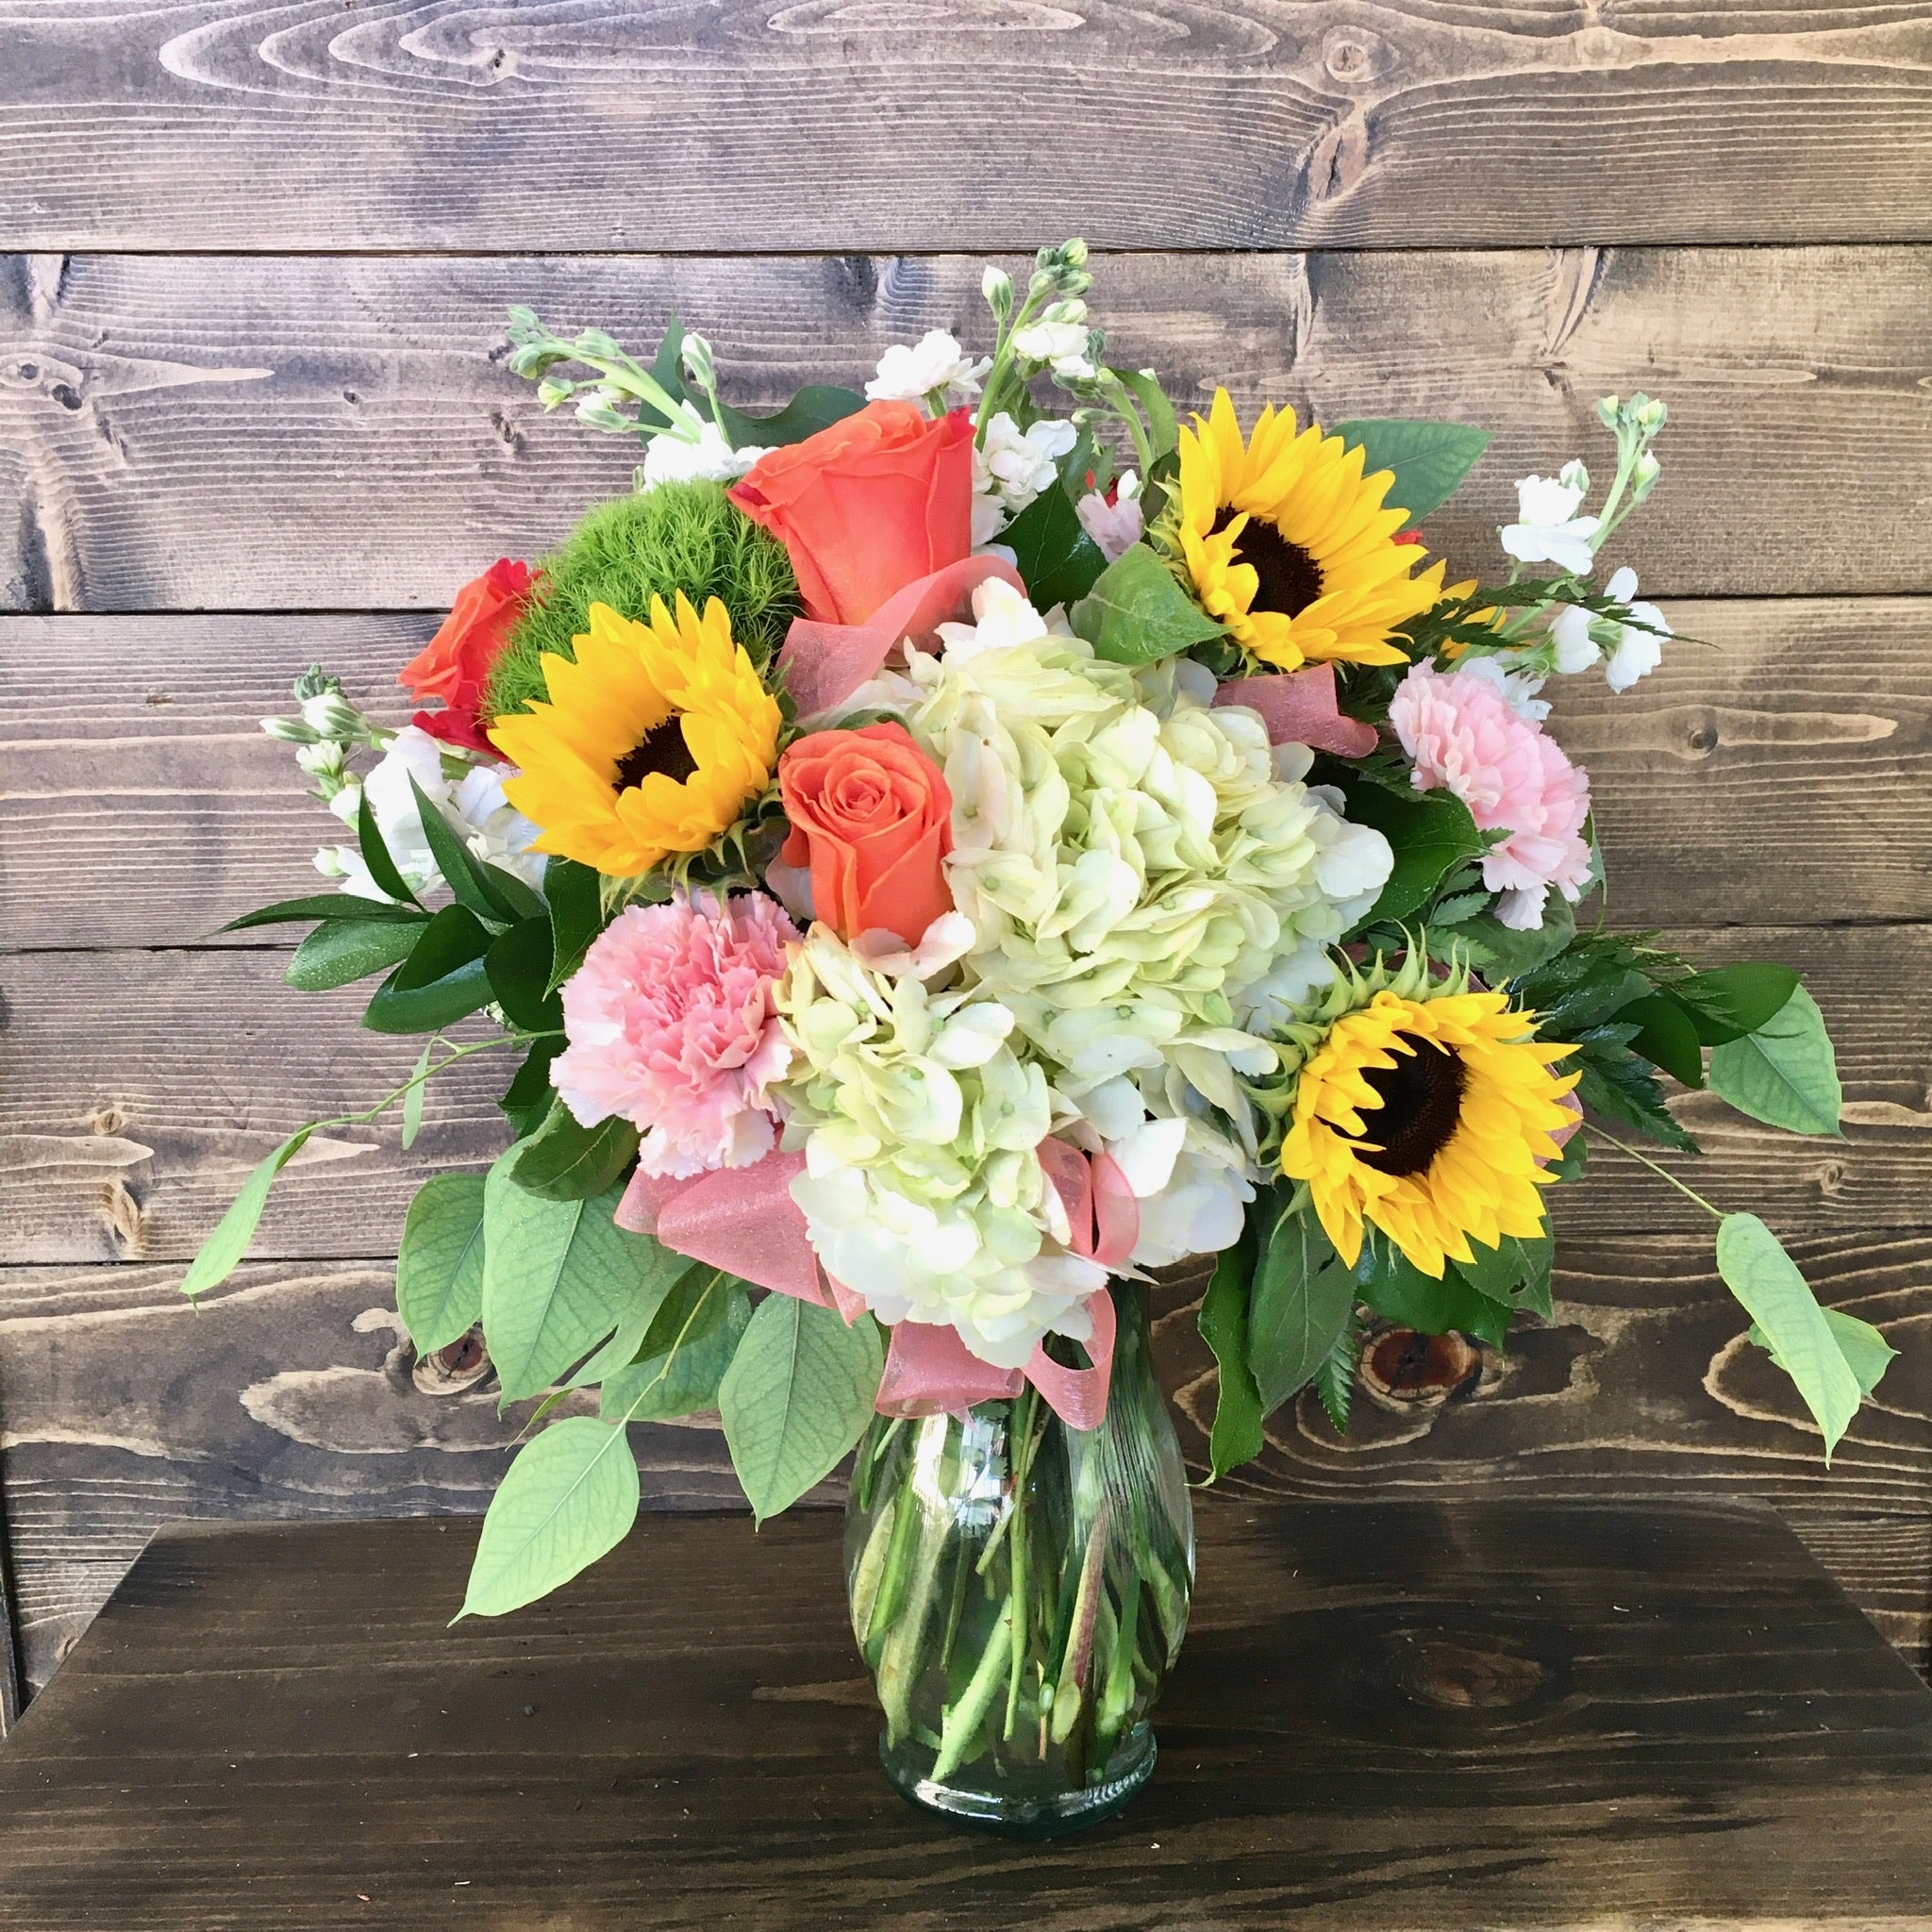 sunflowers roses carnations stock eucalyptus spring arrangement